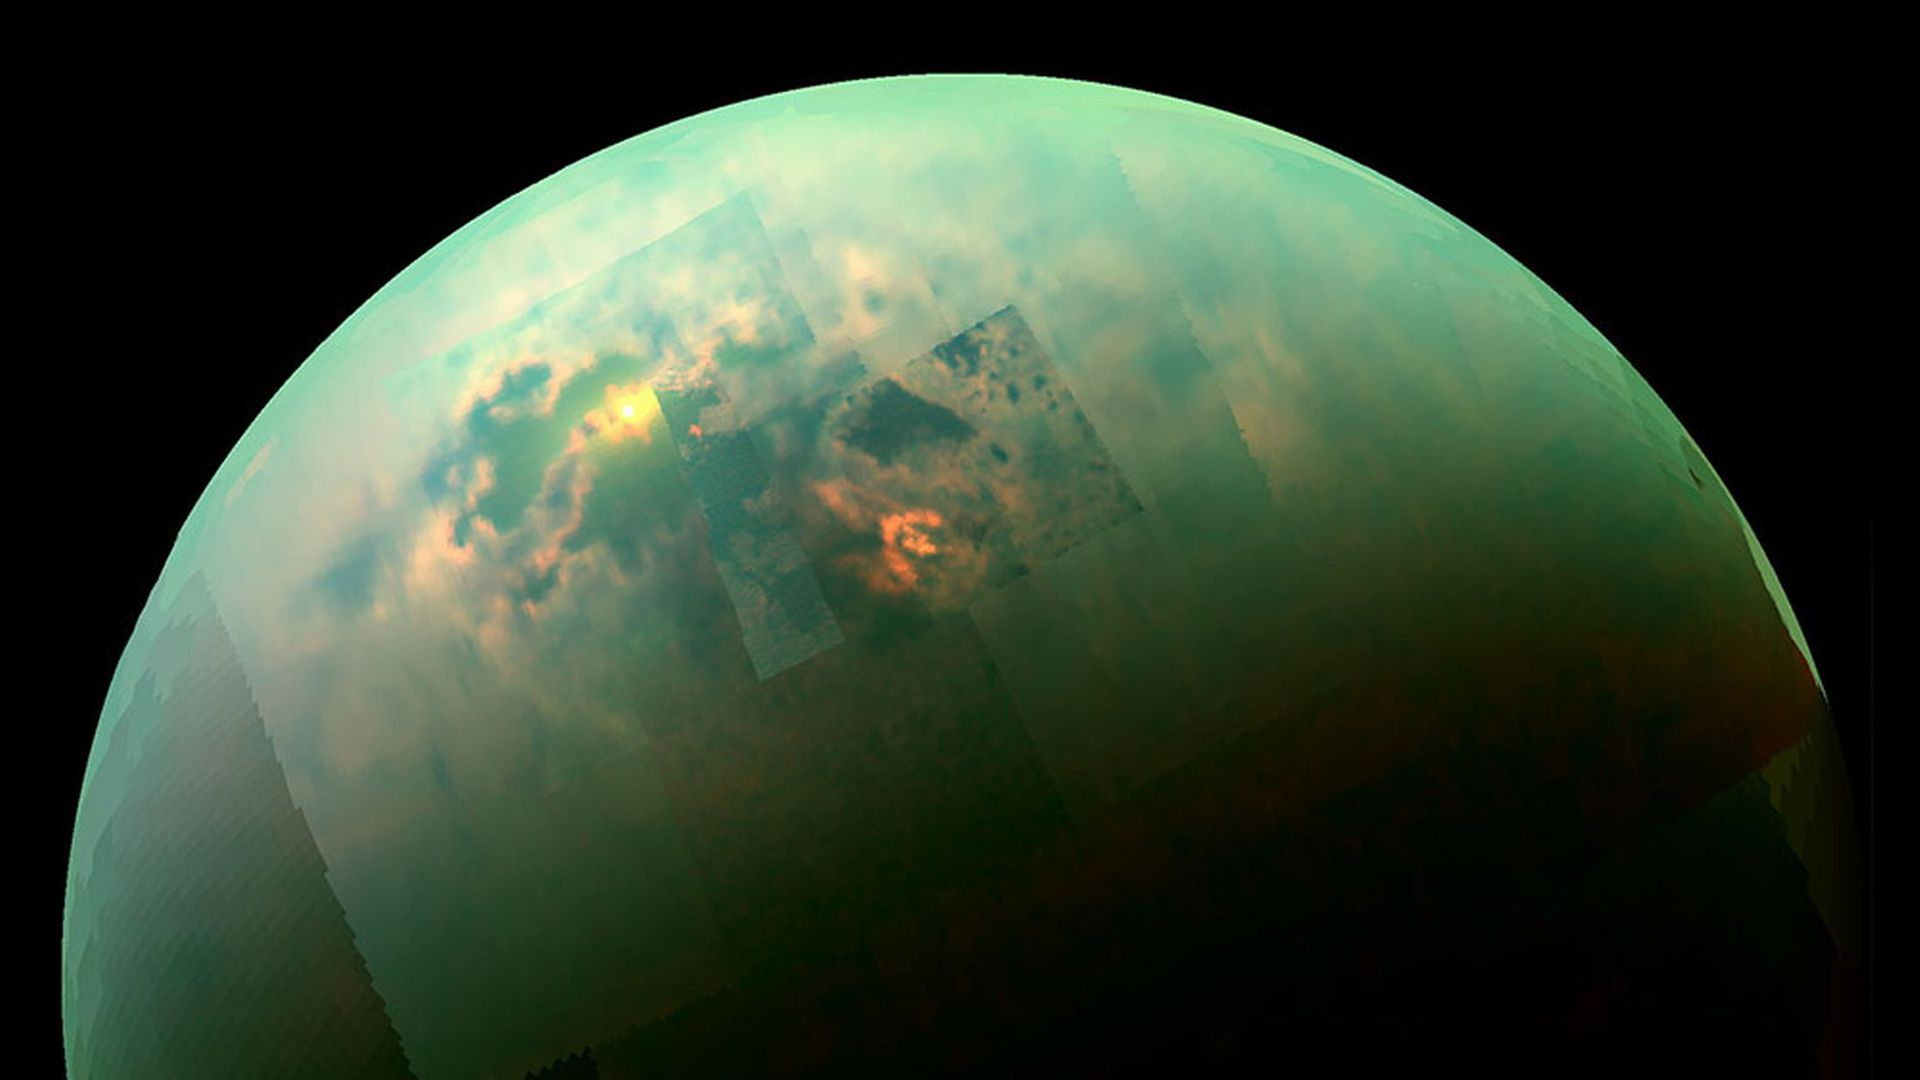 This is an image from NASA of Saturn's moon Titan, which is blueish green.